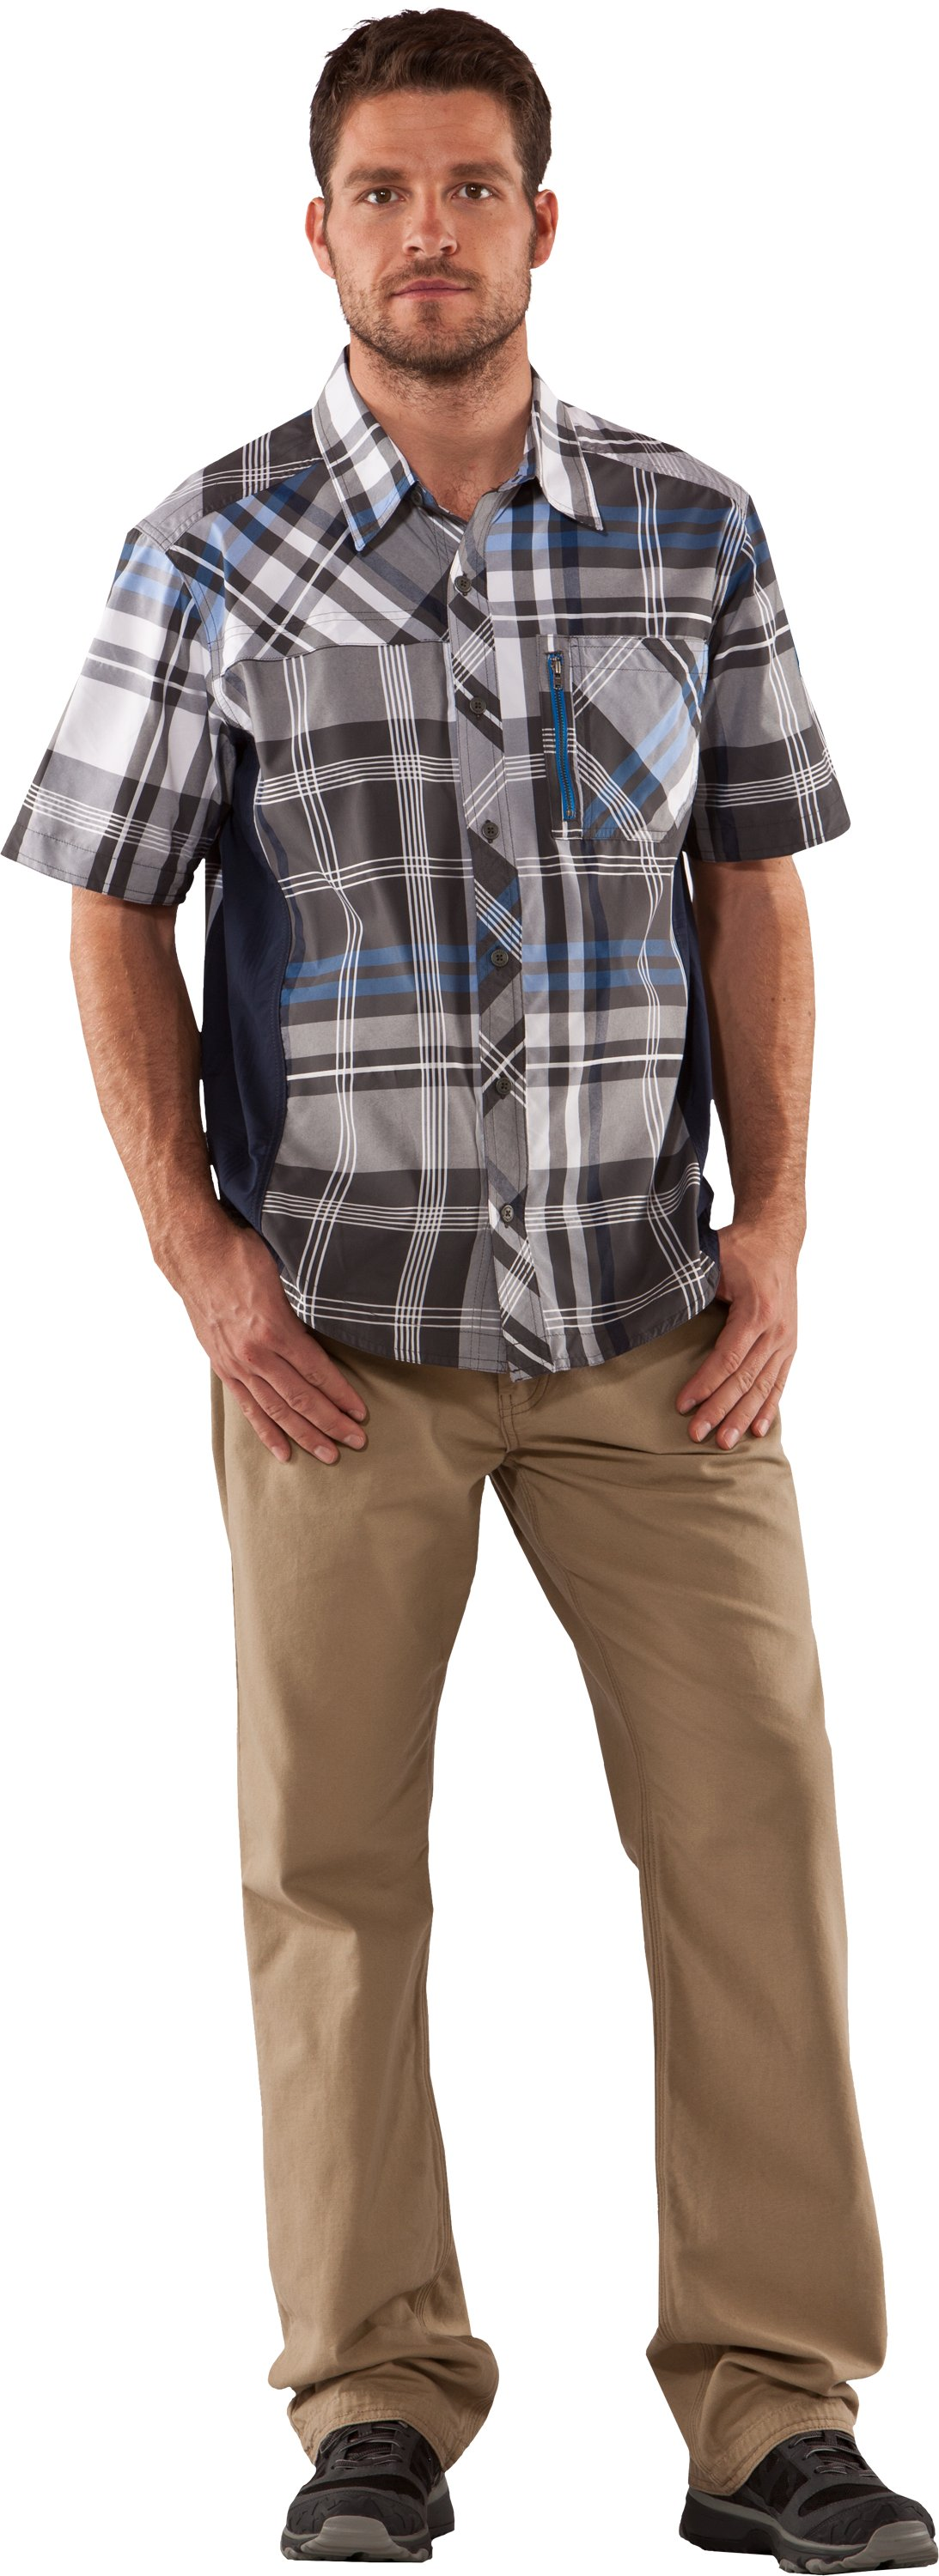 Men's Big Plaid Woven Short Sleeve Shirt, Battleship, Front